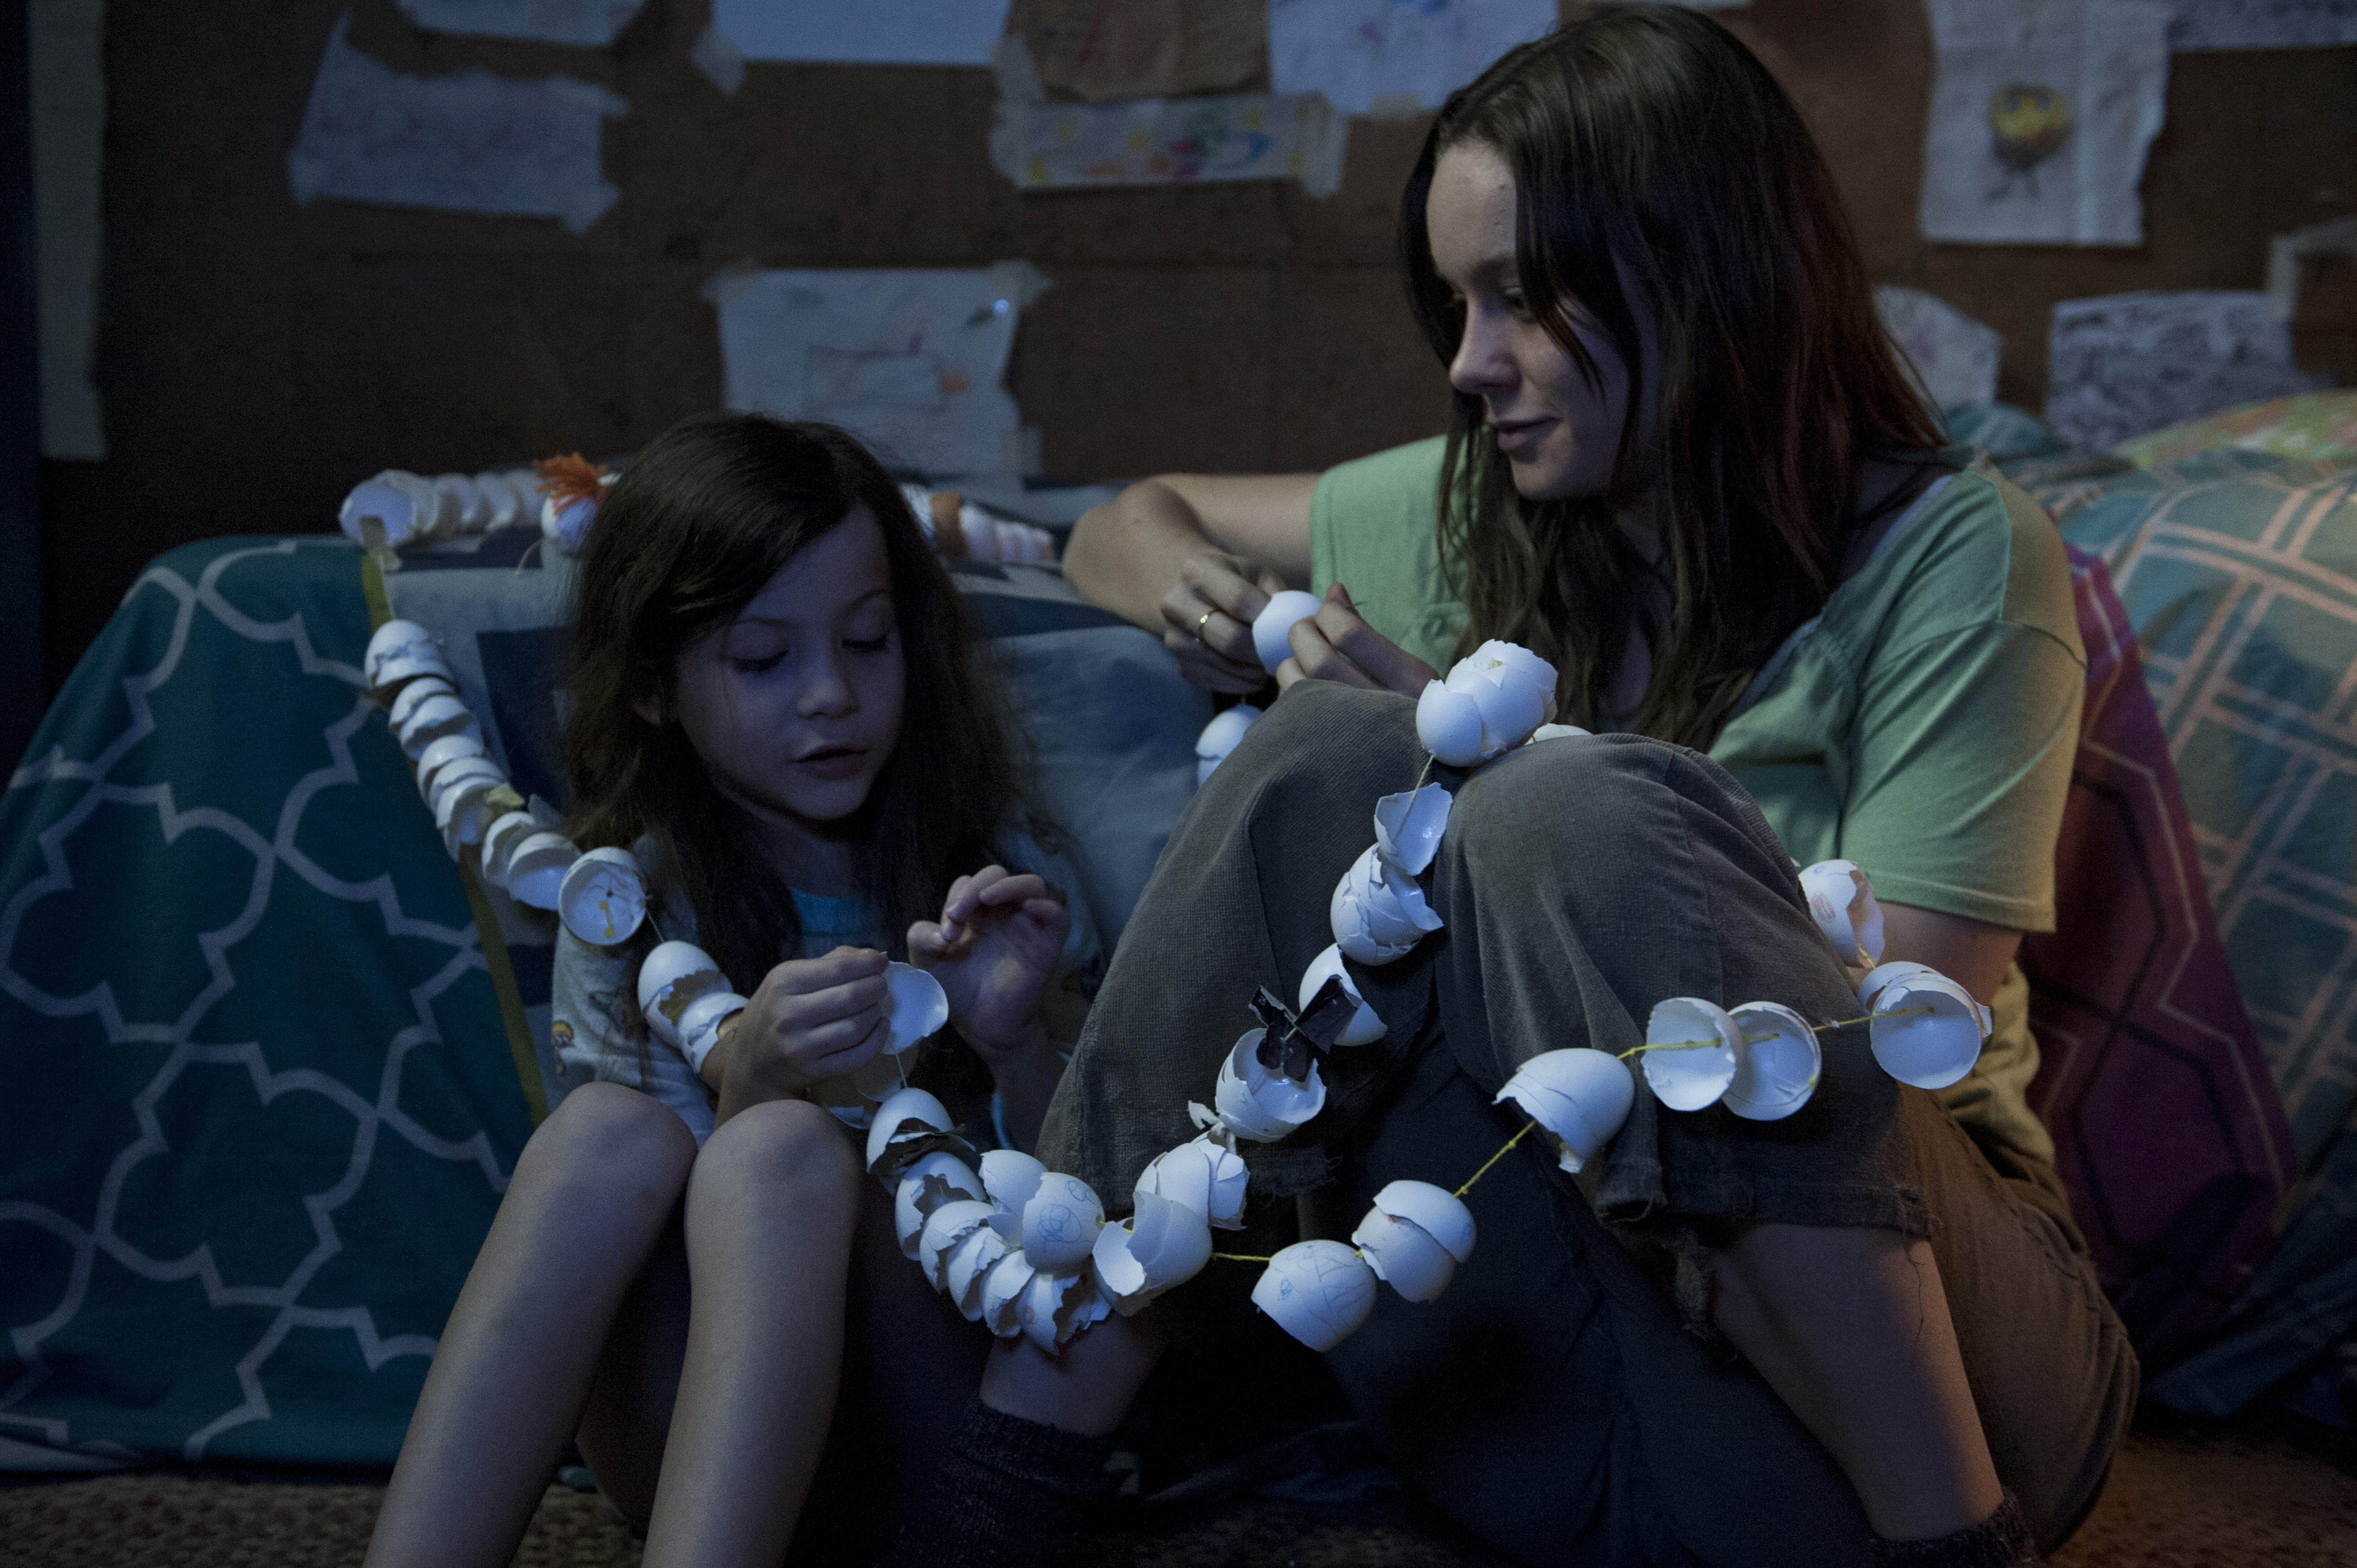 """'Room' stands out: Brie Larson and Jacob Tremblay star in """"Room,"""" a tense, haunting story of abuse, terror and liberation."""